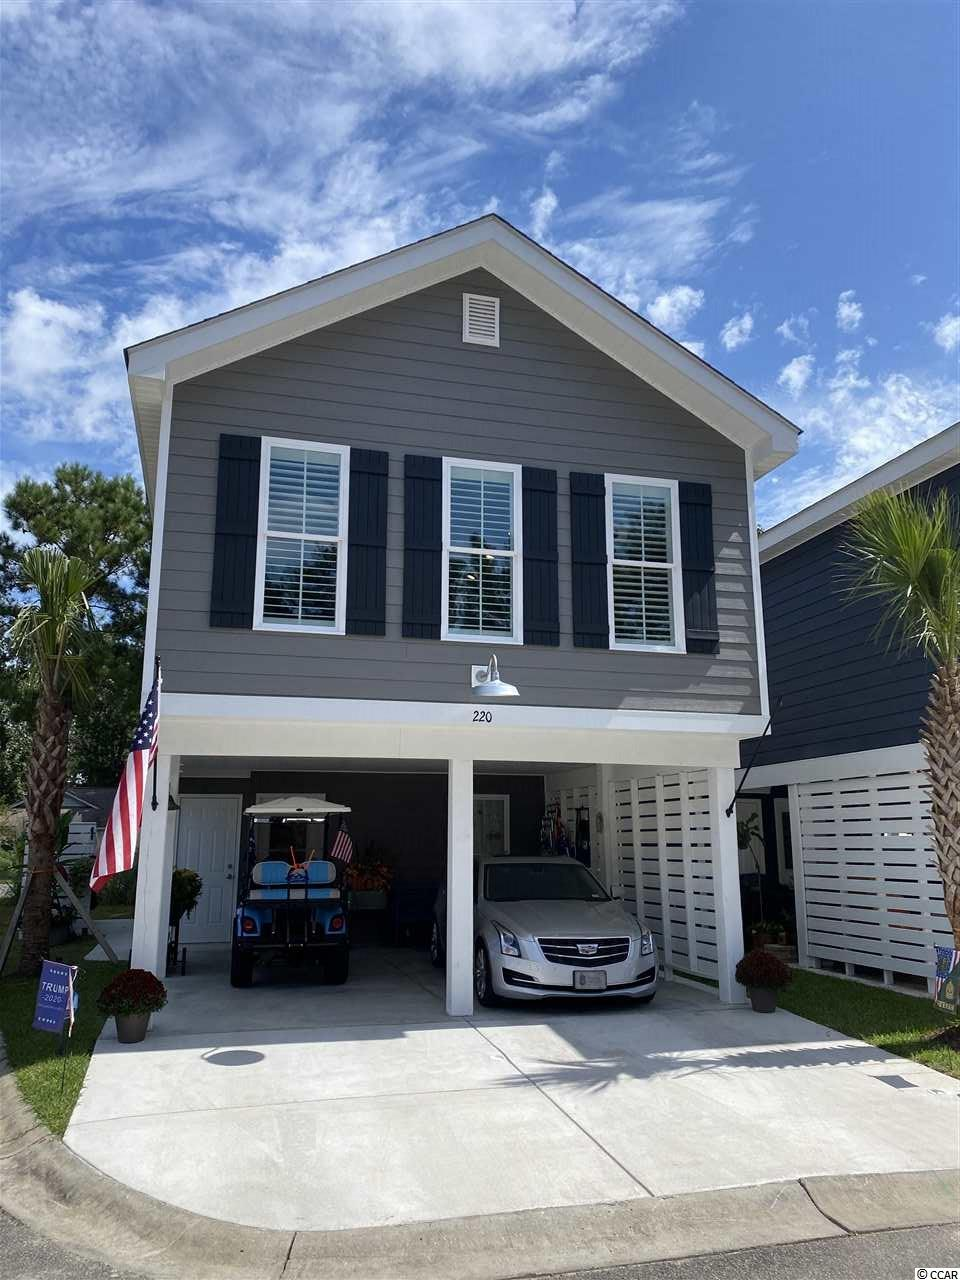 Although only one mile from the Garden City Pier with a golf cart path the entire trip, this home is nestled in a quaint 30 home community with excellent amenities such as a swimming pool and more! This home features Granite countertops in the kitchen, undermount SS sink, GE appliance package with side by side counter depth fridge, ice maker and water dispenser. The white subway tile backsplash accentuates the quality of the kitchen!  Bathrooms include Carrera Marble solid surface countertops with undermount sinks, shiplap walls and comfort height toilet in the master.   Cathedral ceilings in the master bedroom give an open and spacious feel to this home. These ceilings are extended throughout the kitchen into the living room, adding a greater sense of space. To keep the coastal cottage feeling throughout, the living room is accented with a shiplap wall. What really makes this feel authentic is the laminate flooring wall to wall; except wet areas where 18x18 modern tile adorns the floor.   There are far too many upgrades to include in this description so contact your realtor or myself to schedule a showing!